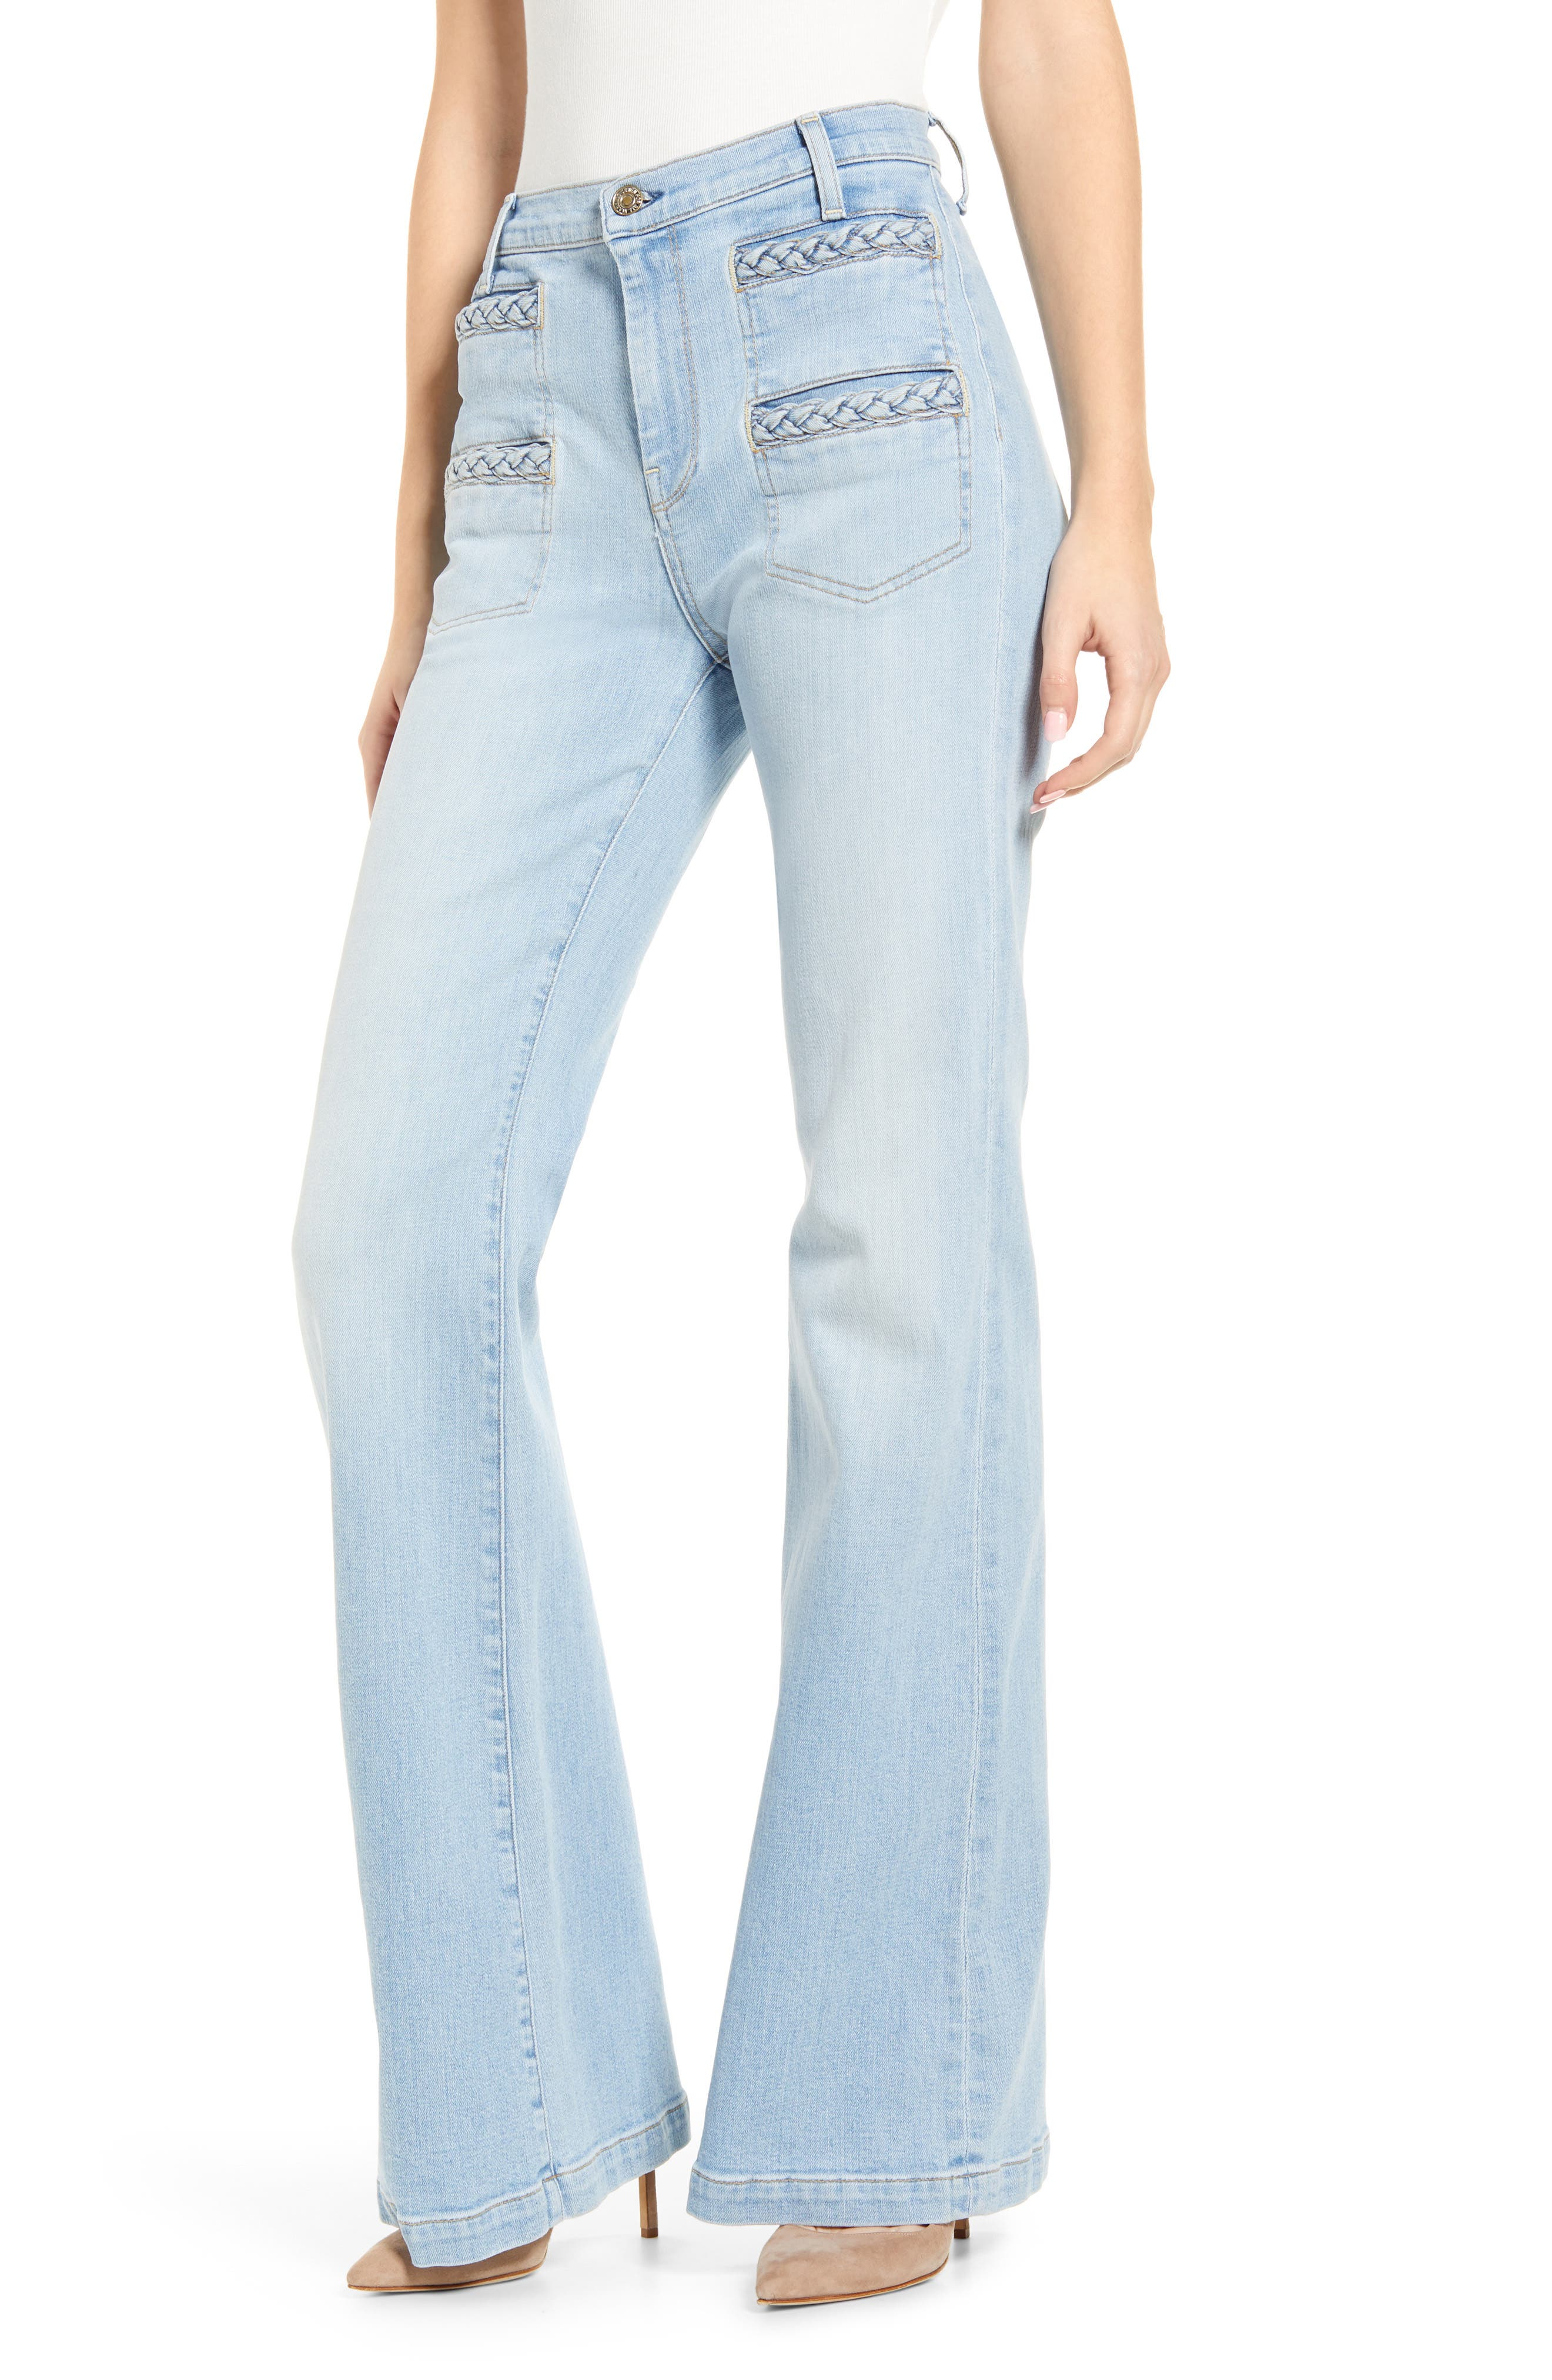 Women's 7 For All Mankind Georgia Braided Welt High Waist Flare Jeans